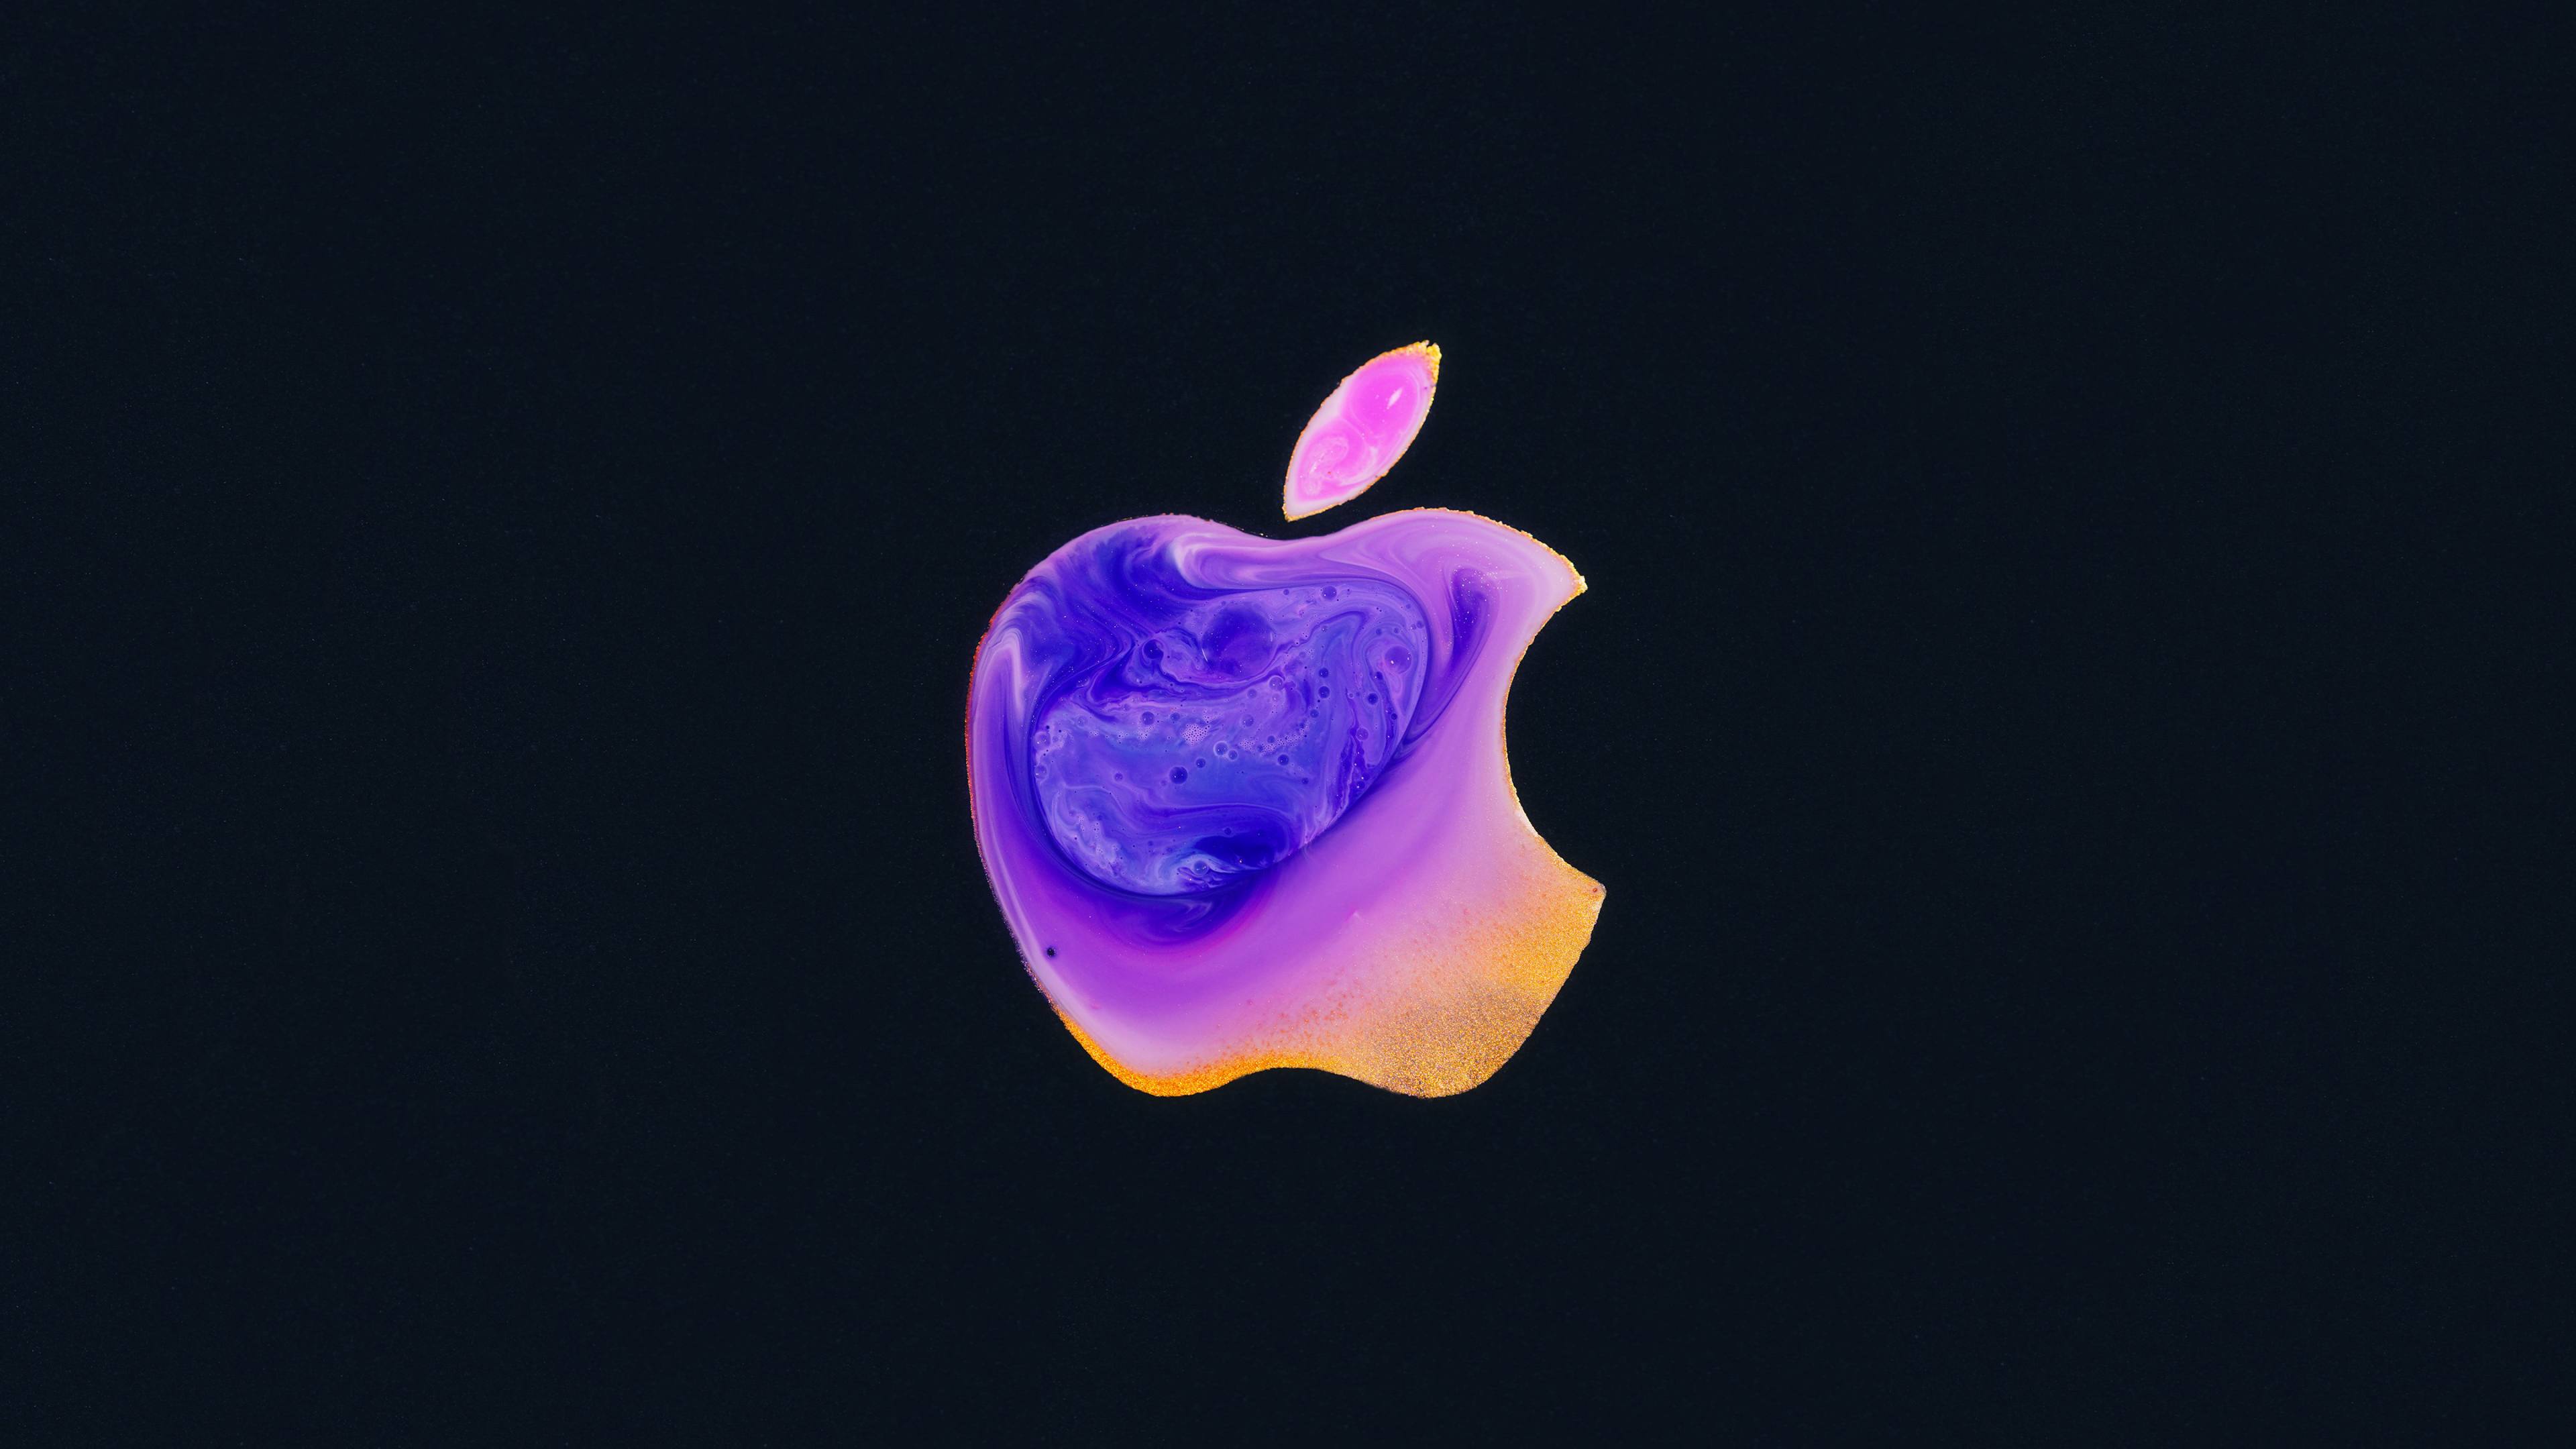 Iphone 12 Pro Max Wallpaper Hd 4K - thecellular Iphone And ...